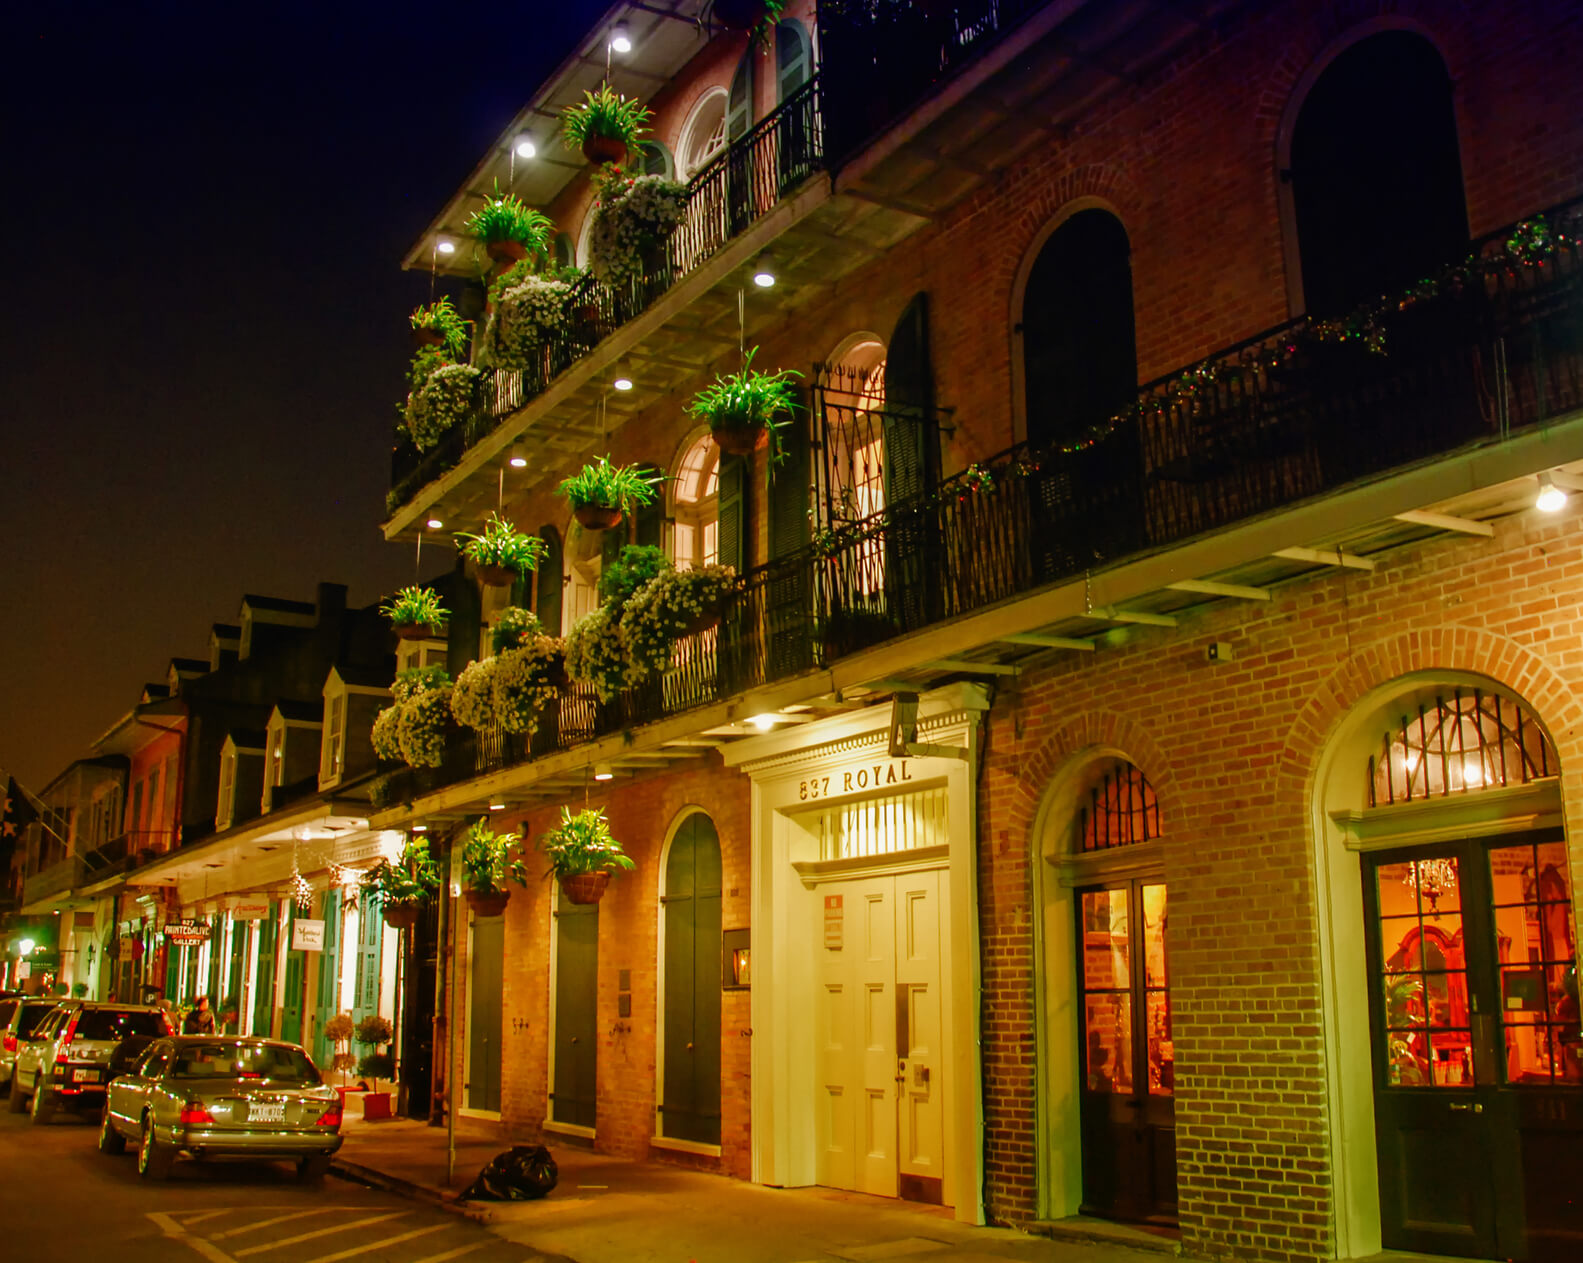 Non-stop from Washington DC to New Orleans (& vice versa) for only $116 roundtrip (Oct-Nov dates)